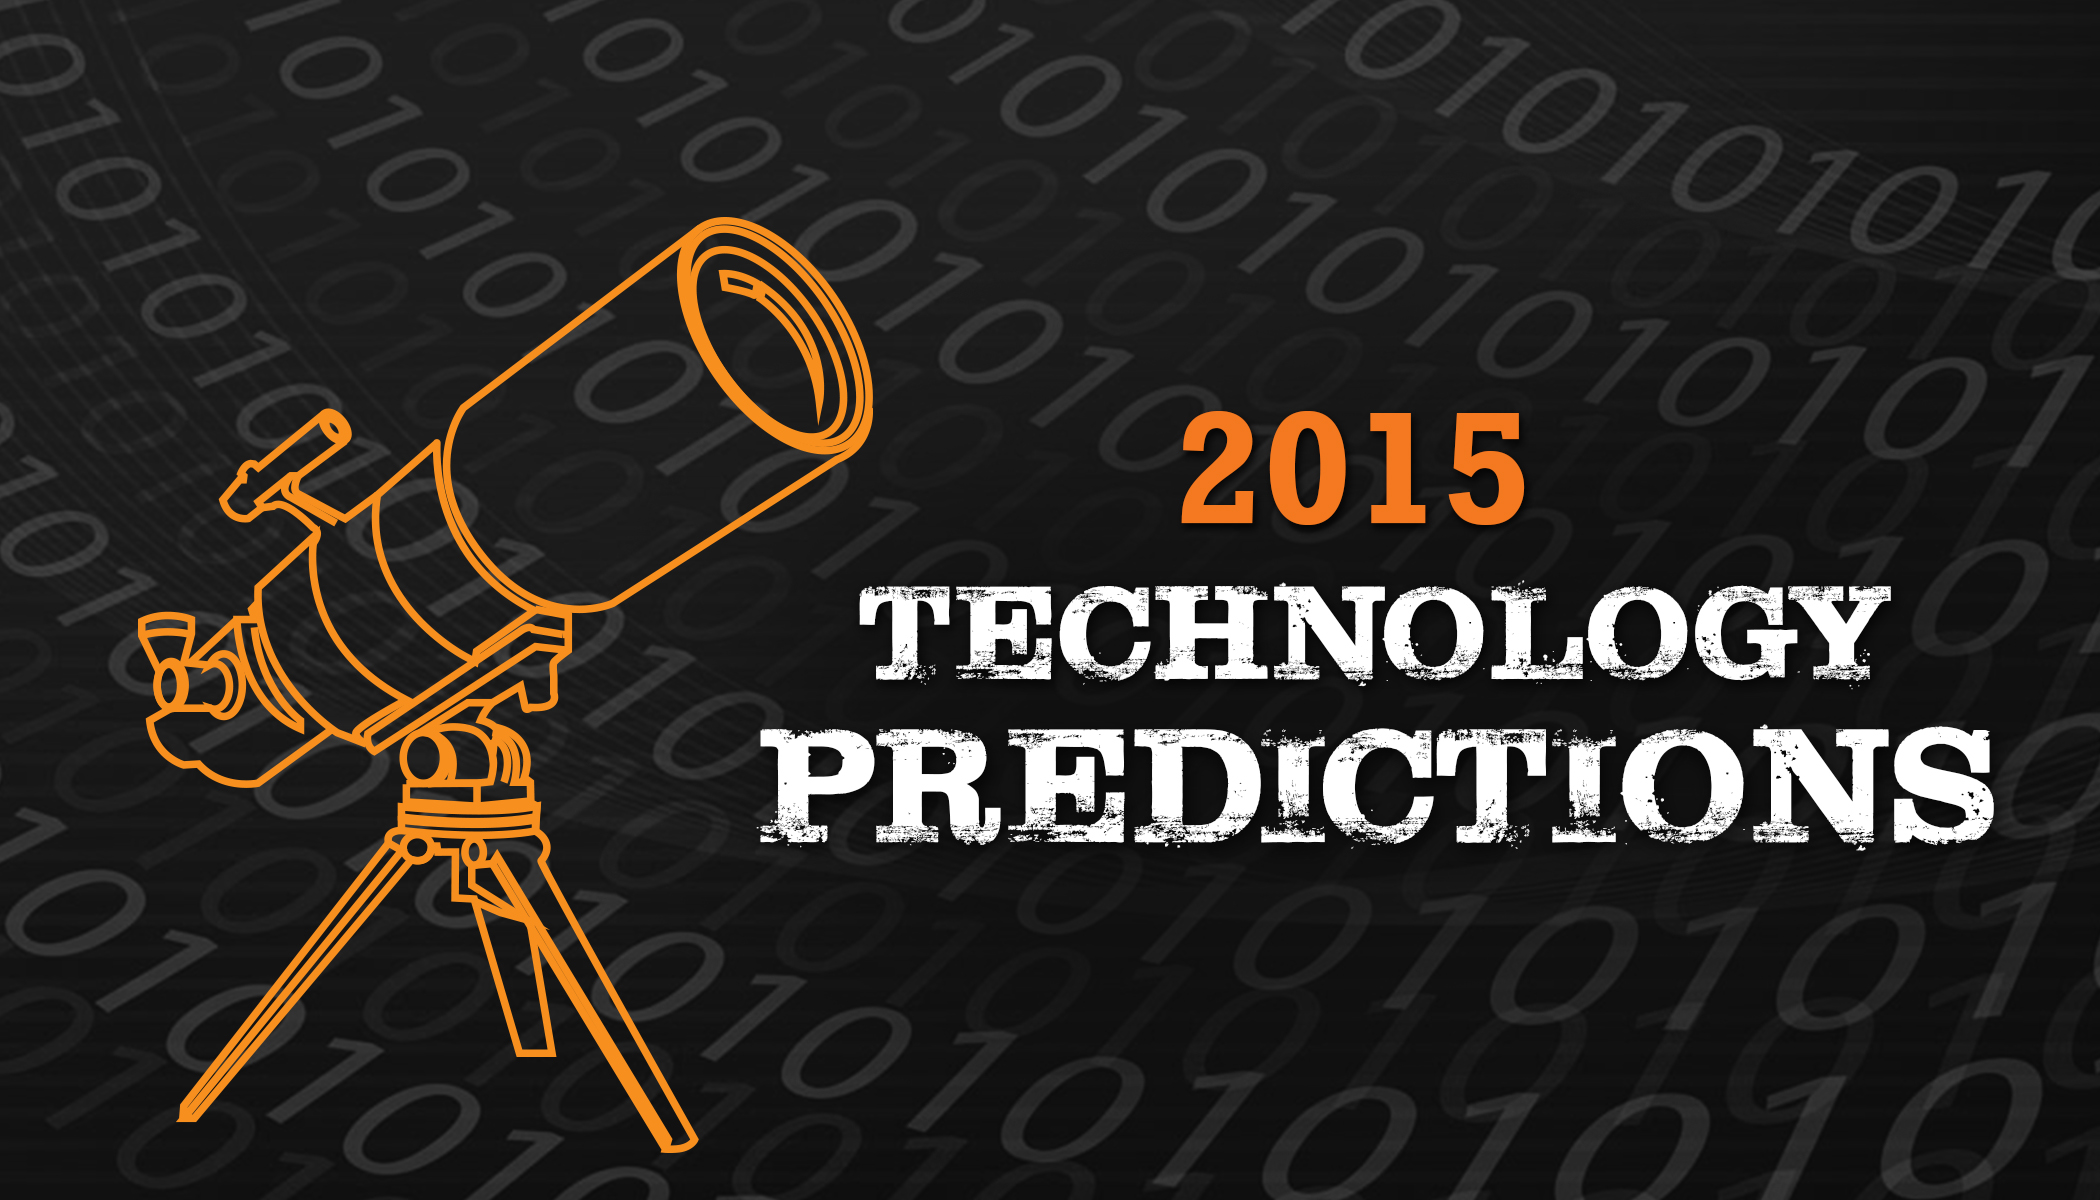 Technology Predictions